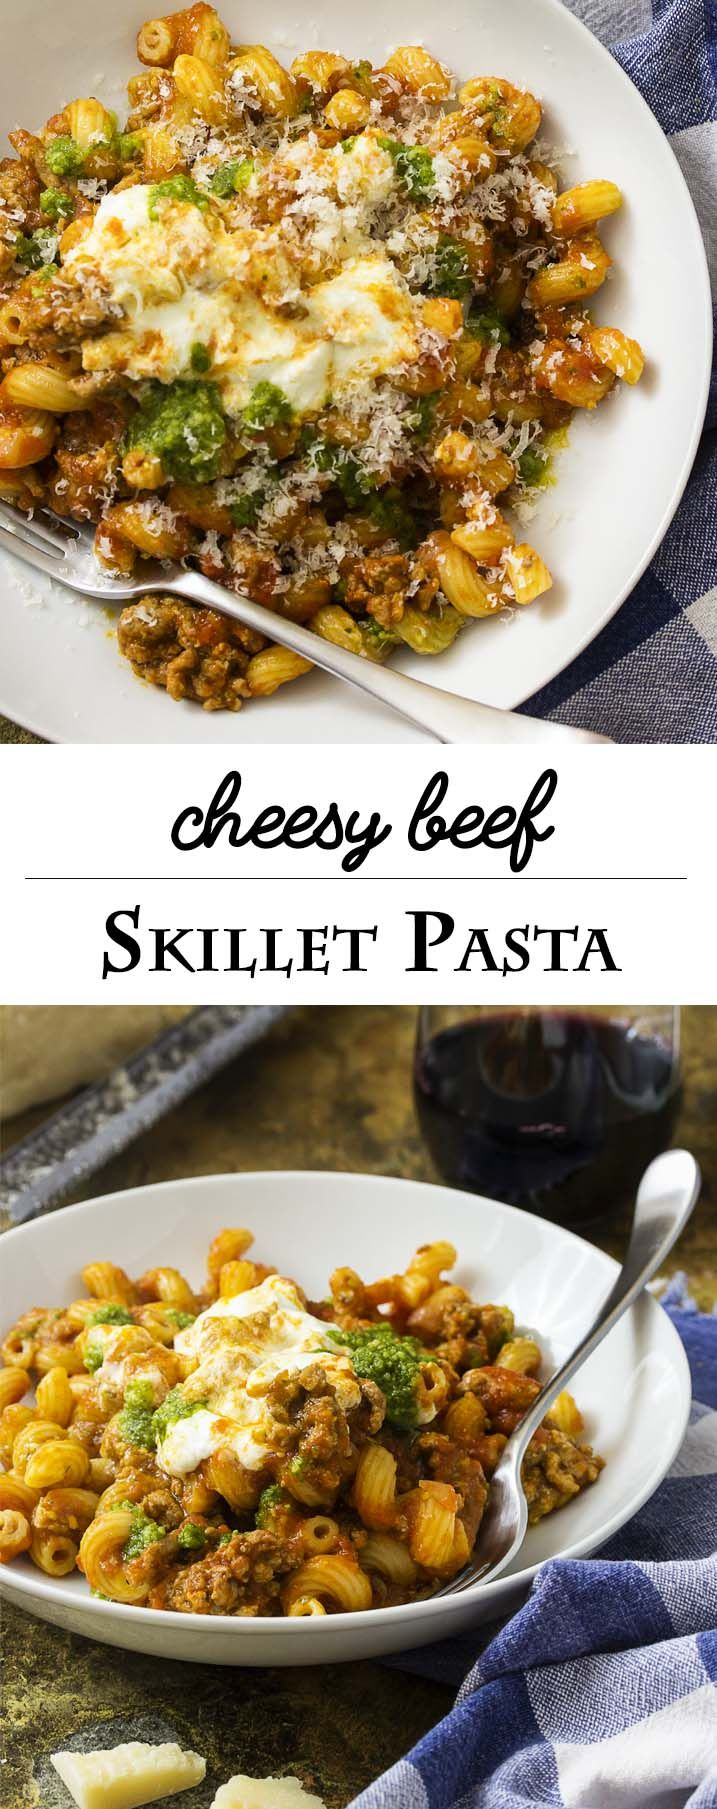 Dinner comes together in a flash with this recipe for kid-pleasing, one-pot ground beef pasta skillet topped with pesto and ricotta. | justalittlebitofbacon.com